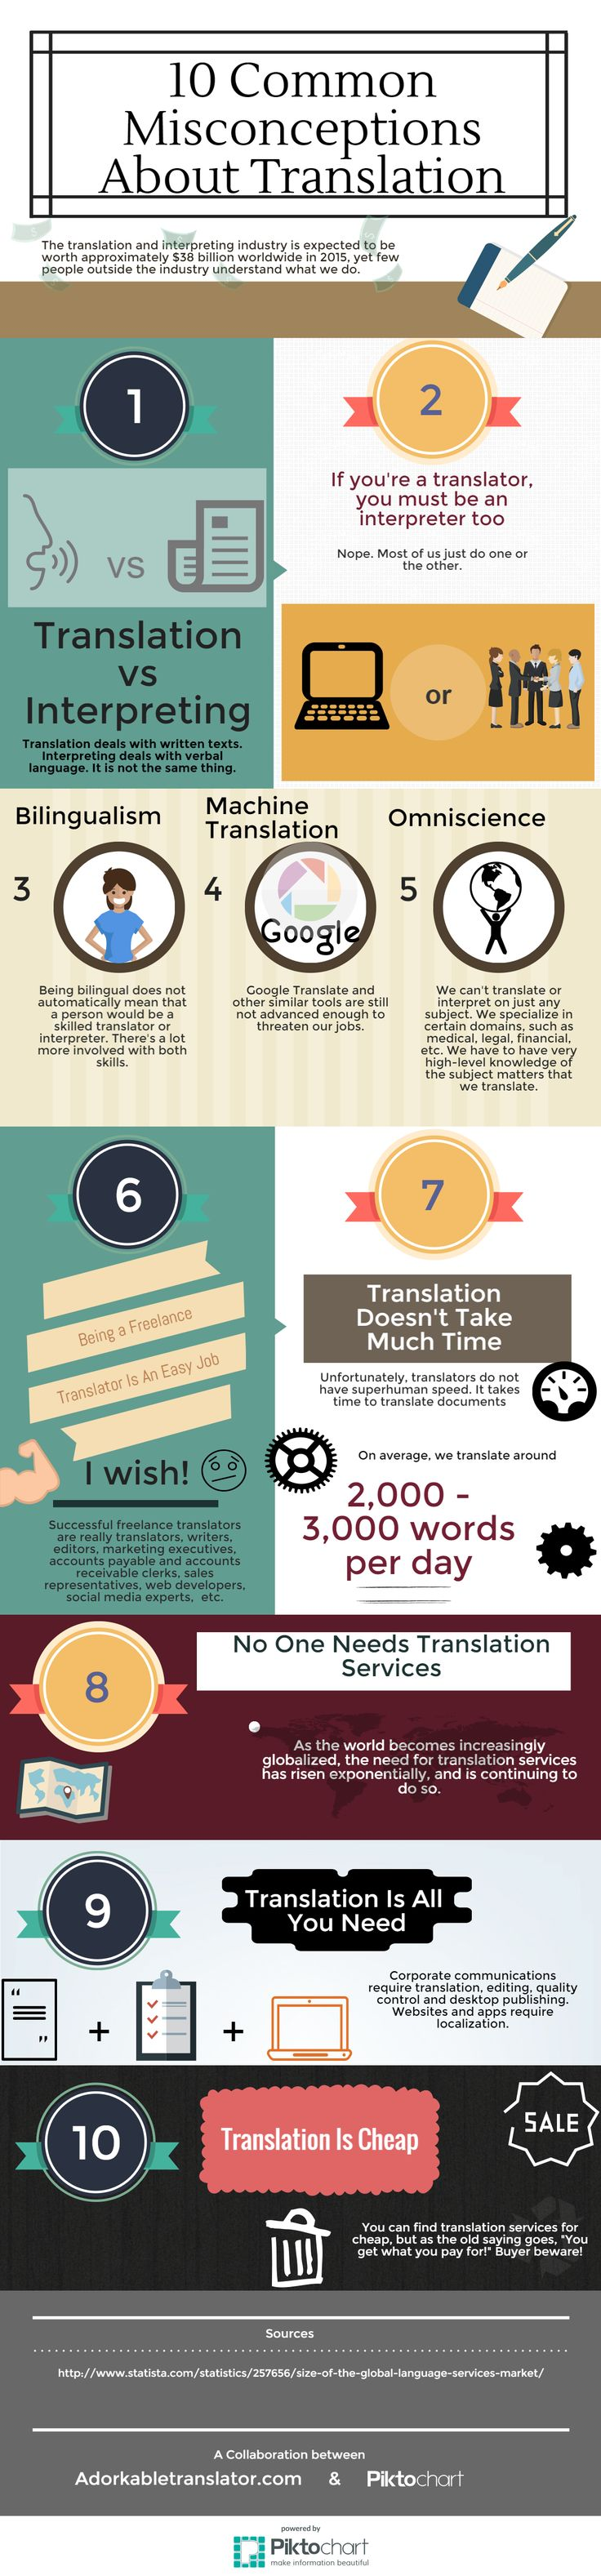 10 Common Misconceptions About Translation bigger